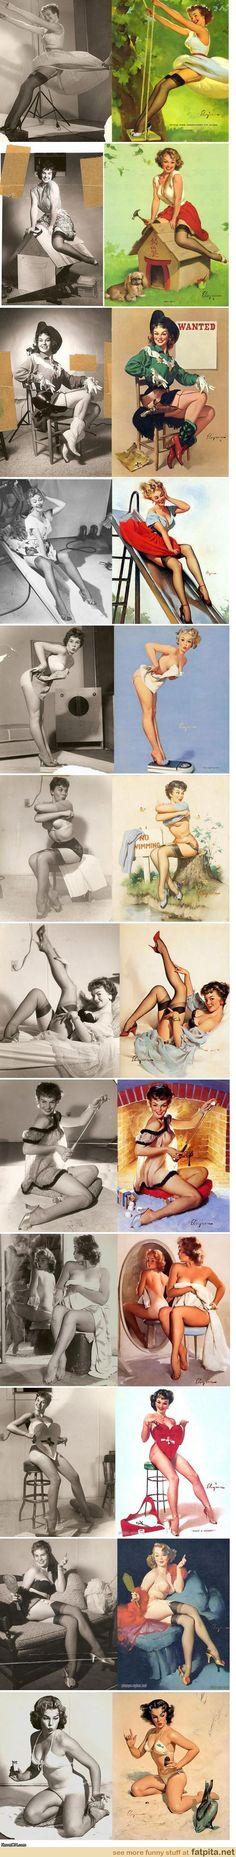 Photoshop before photoshop  Love Gil Elvgren's pin-ups & I've seen a couple of these photos before but not all these. Very cool.